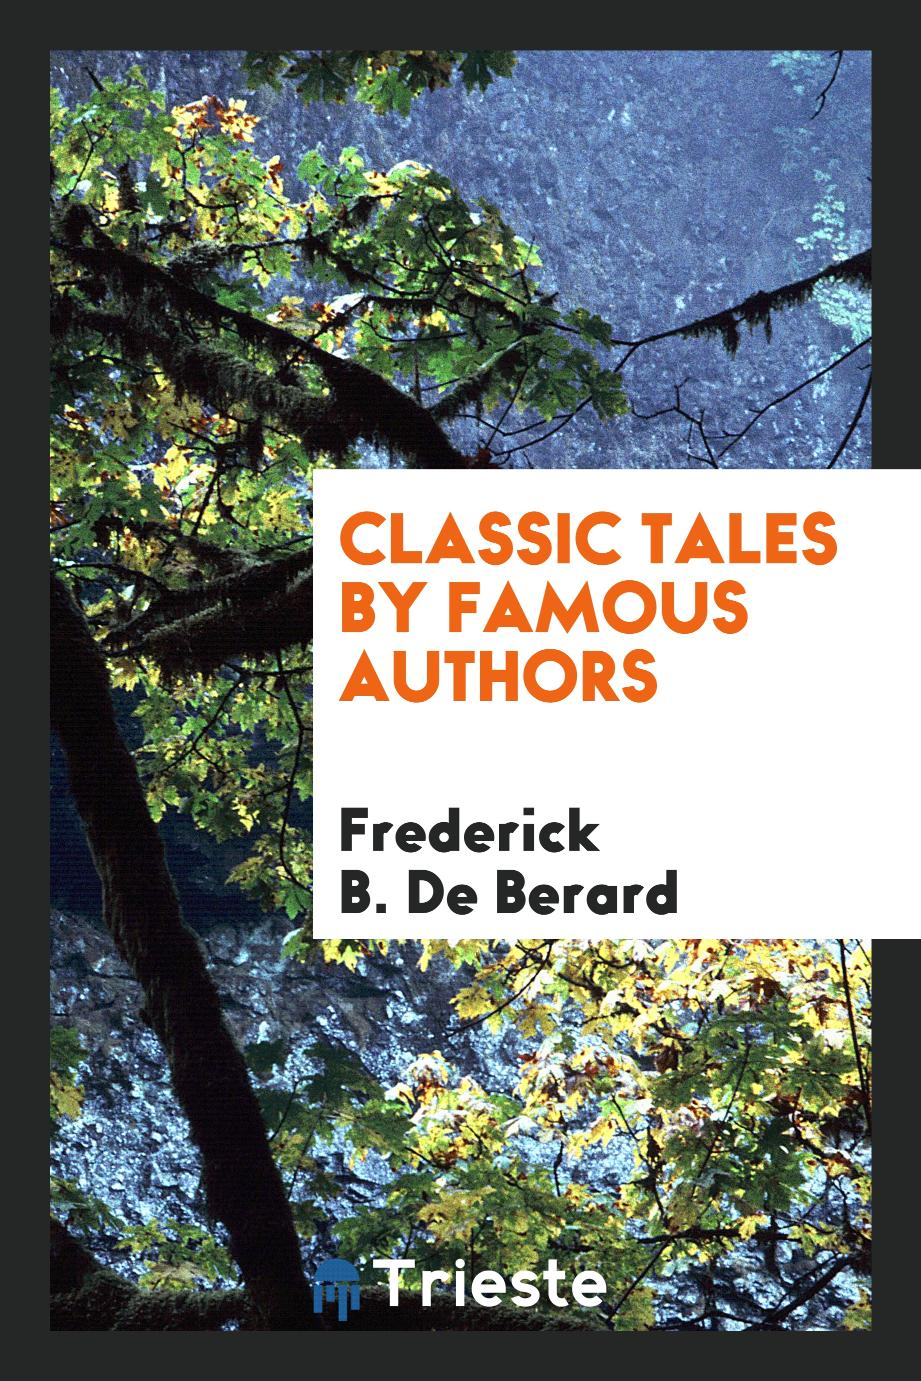 Classic tales by famous authors